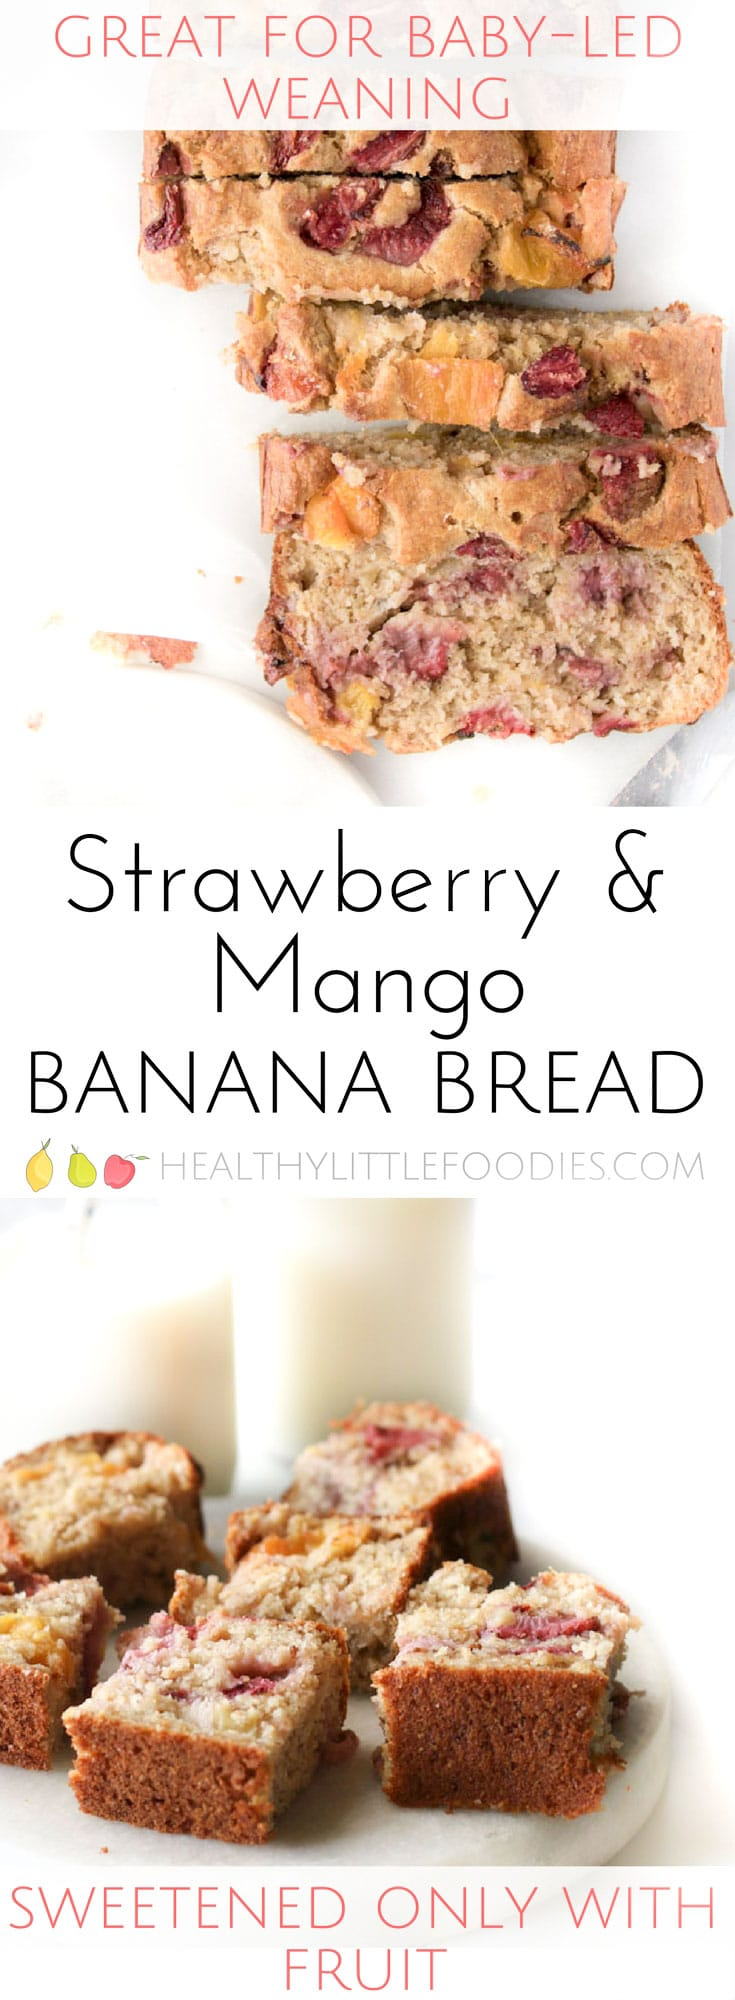 Healthy Strawberry Mango Banana Bread. No refined sugar, sweetened only with fruit. Great for BLW (Baby-led weaning) or for lunch boxes.